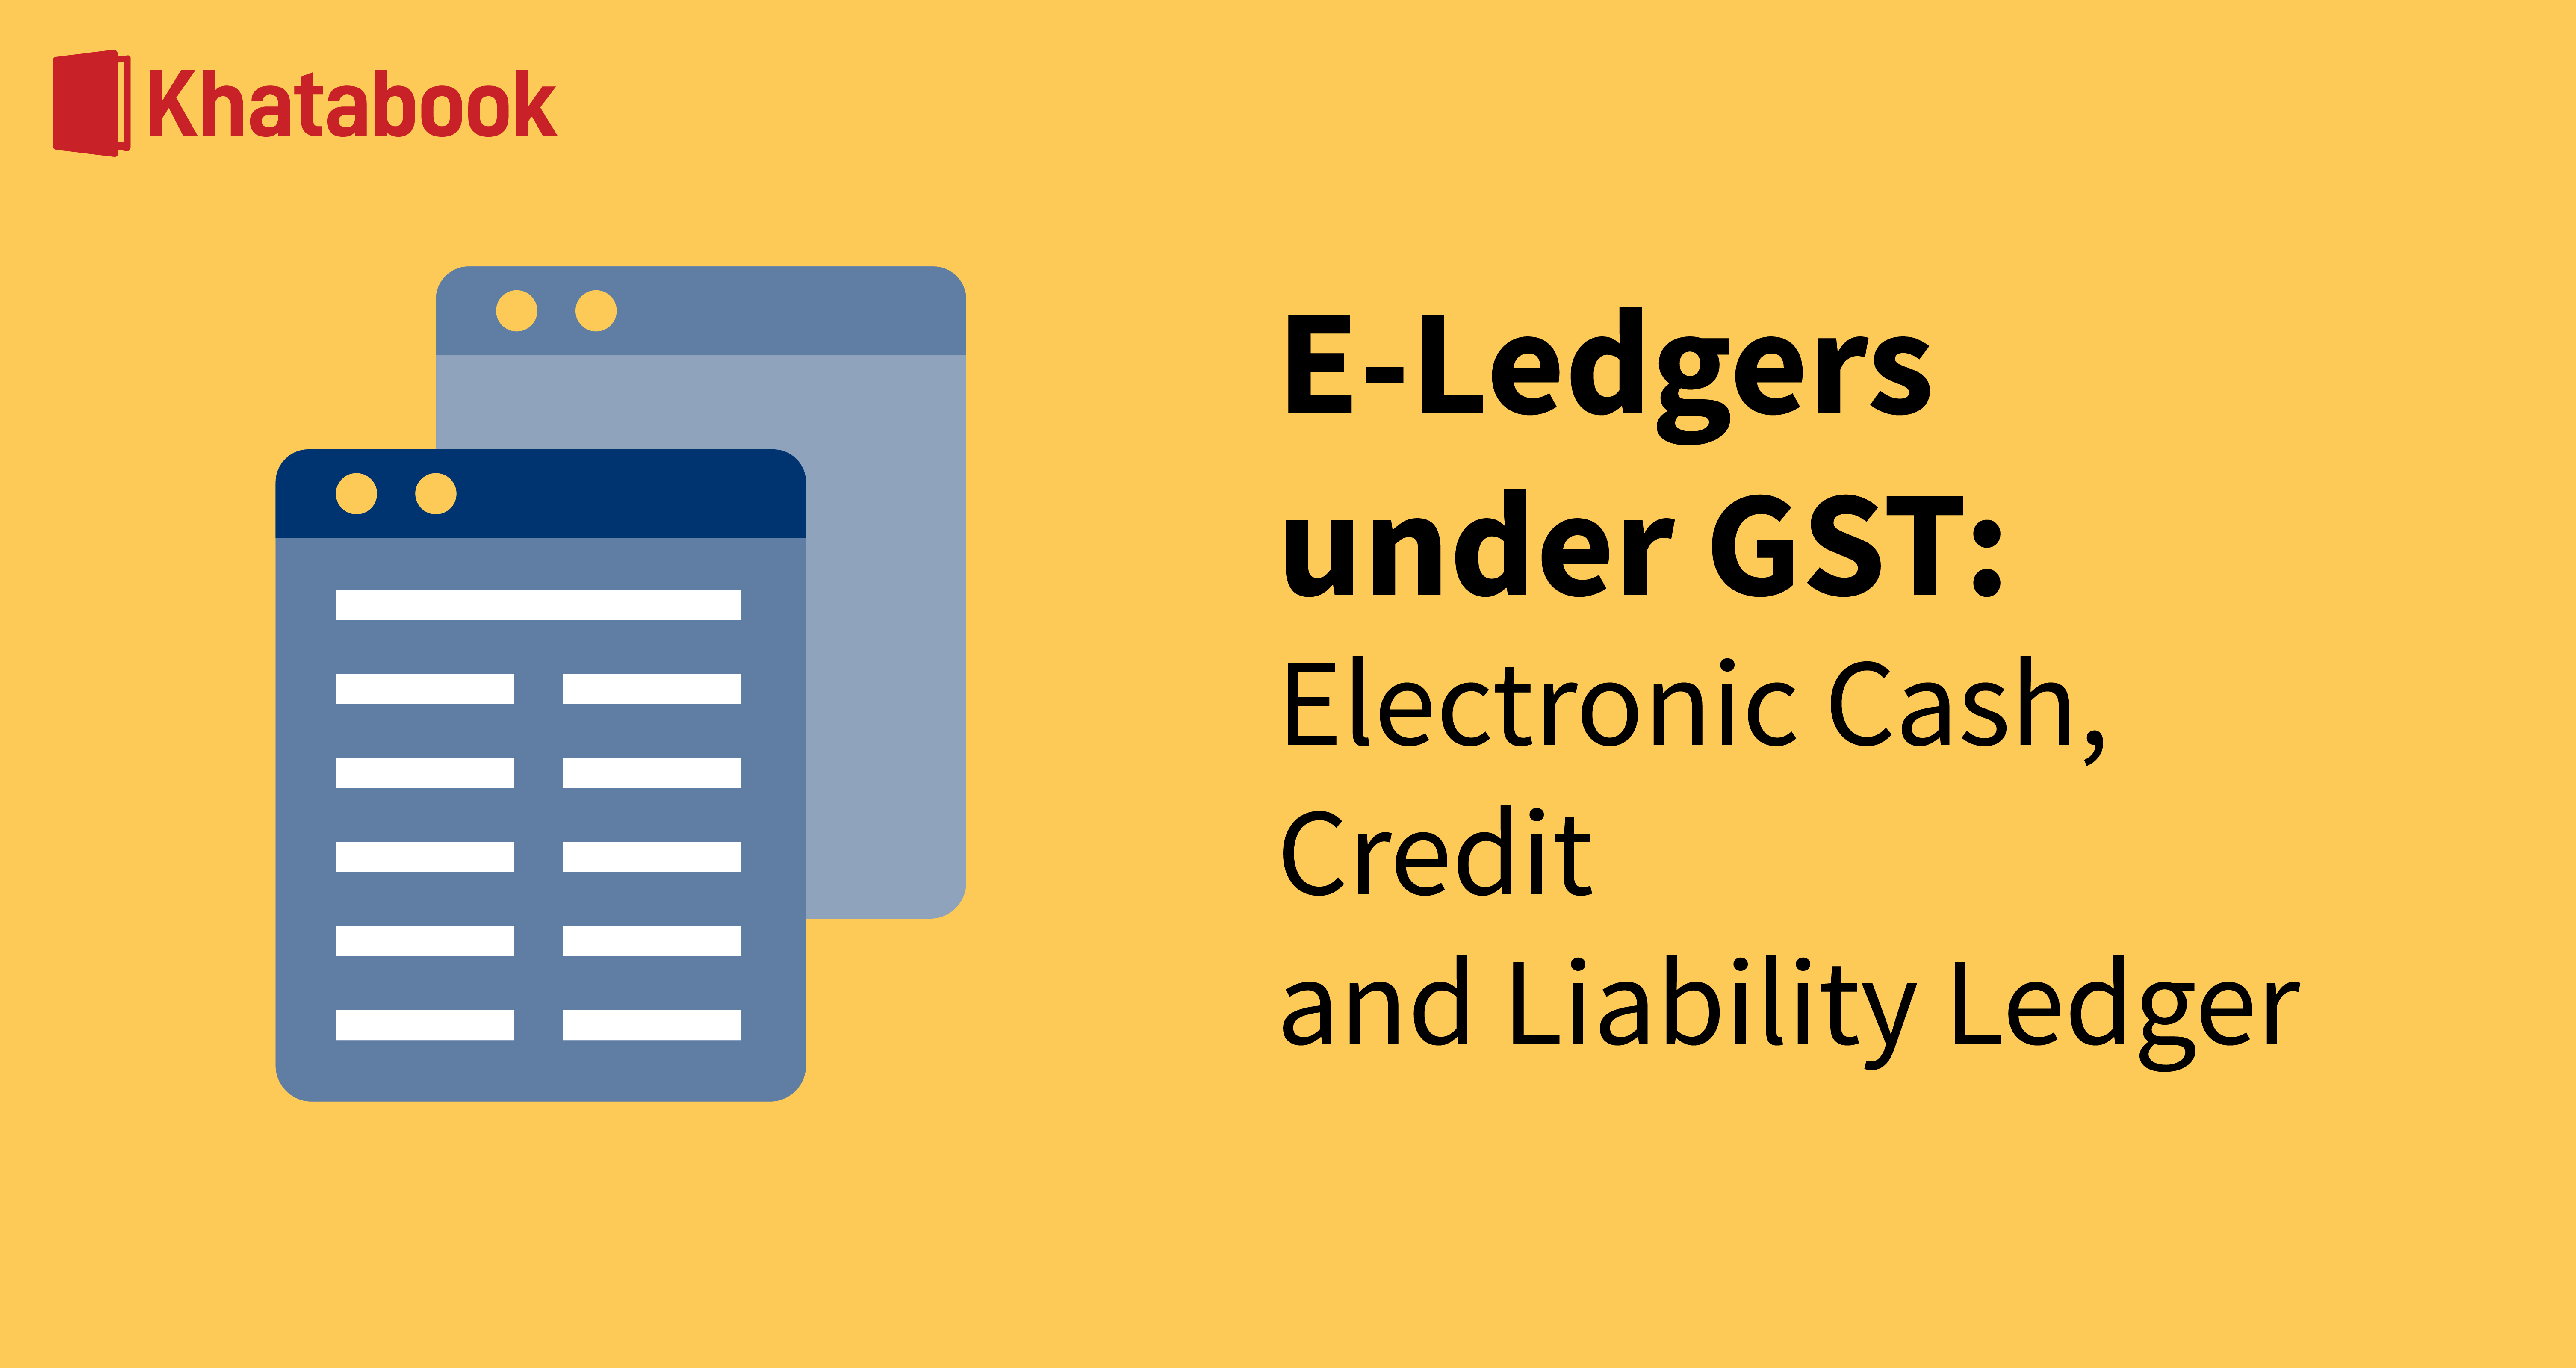 Different Types of E-Ledgers under GST